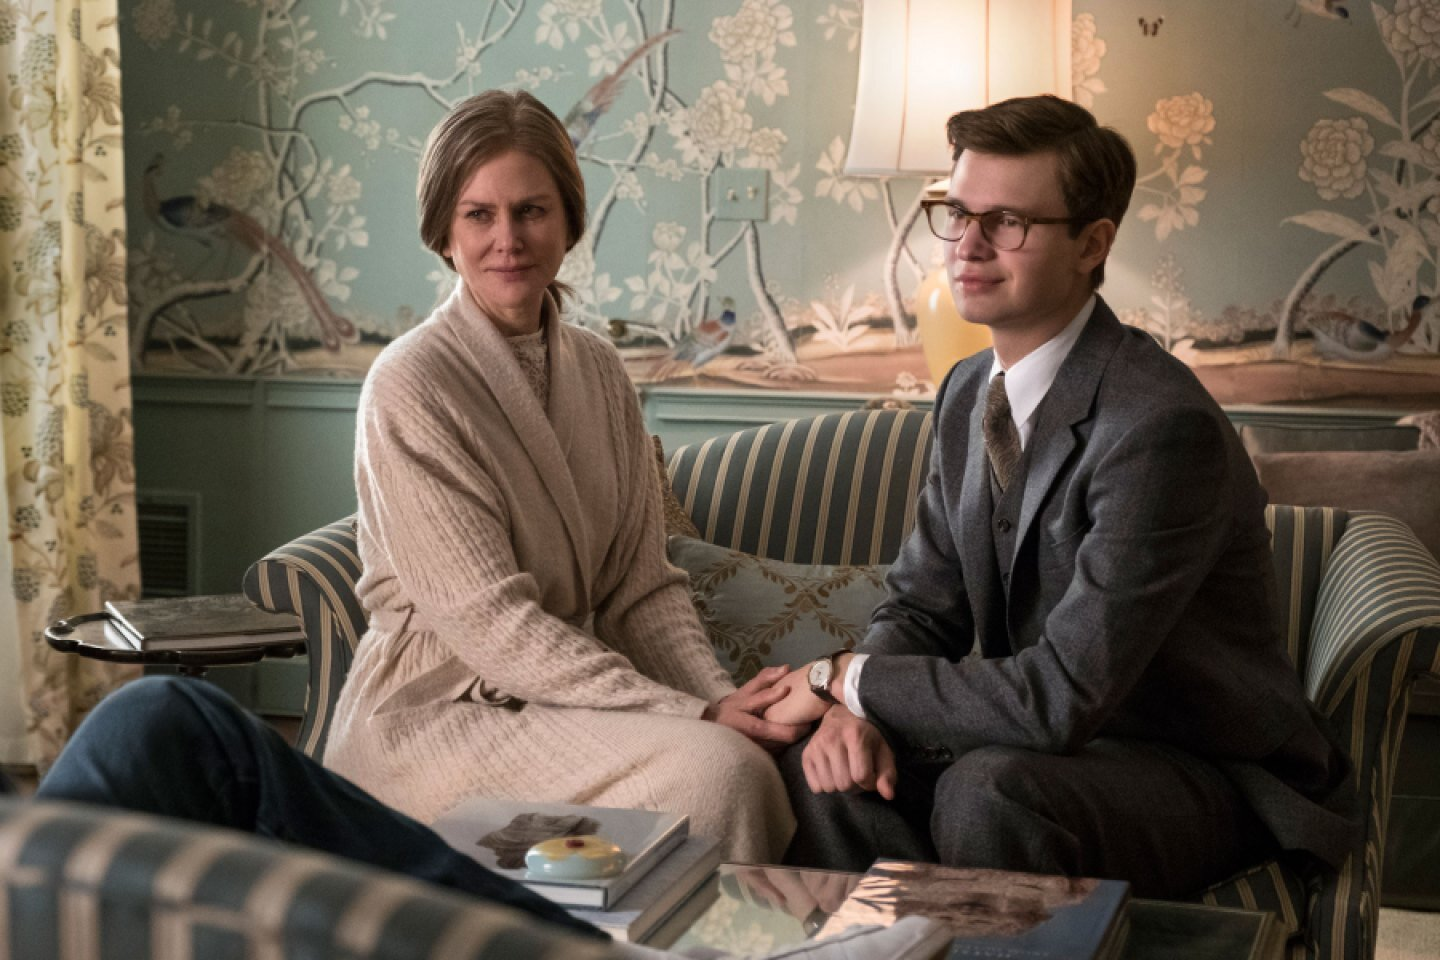 Nicole Kidman and Ansel Elgort in 'The Goldfinch.' / Photo Credit: Macall Polay